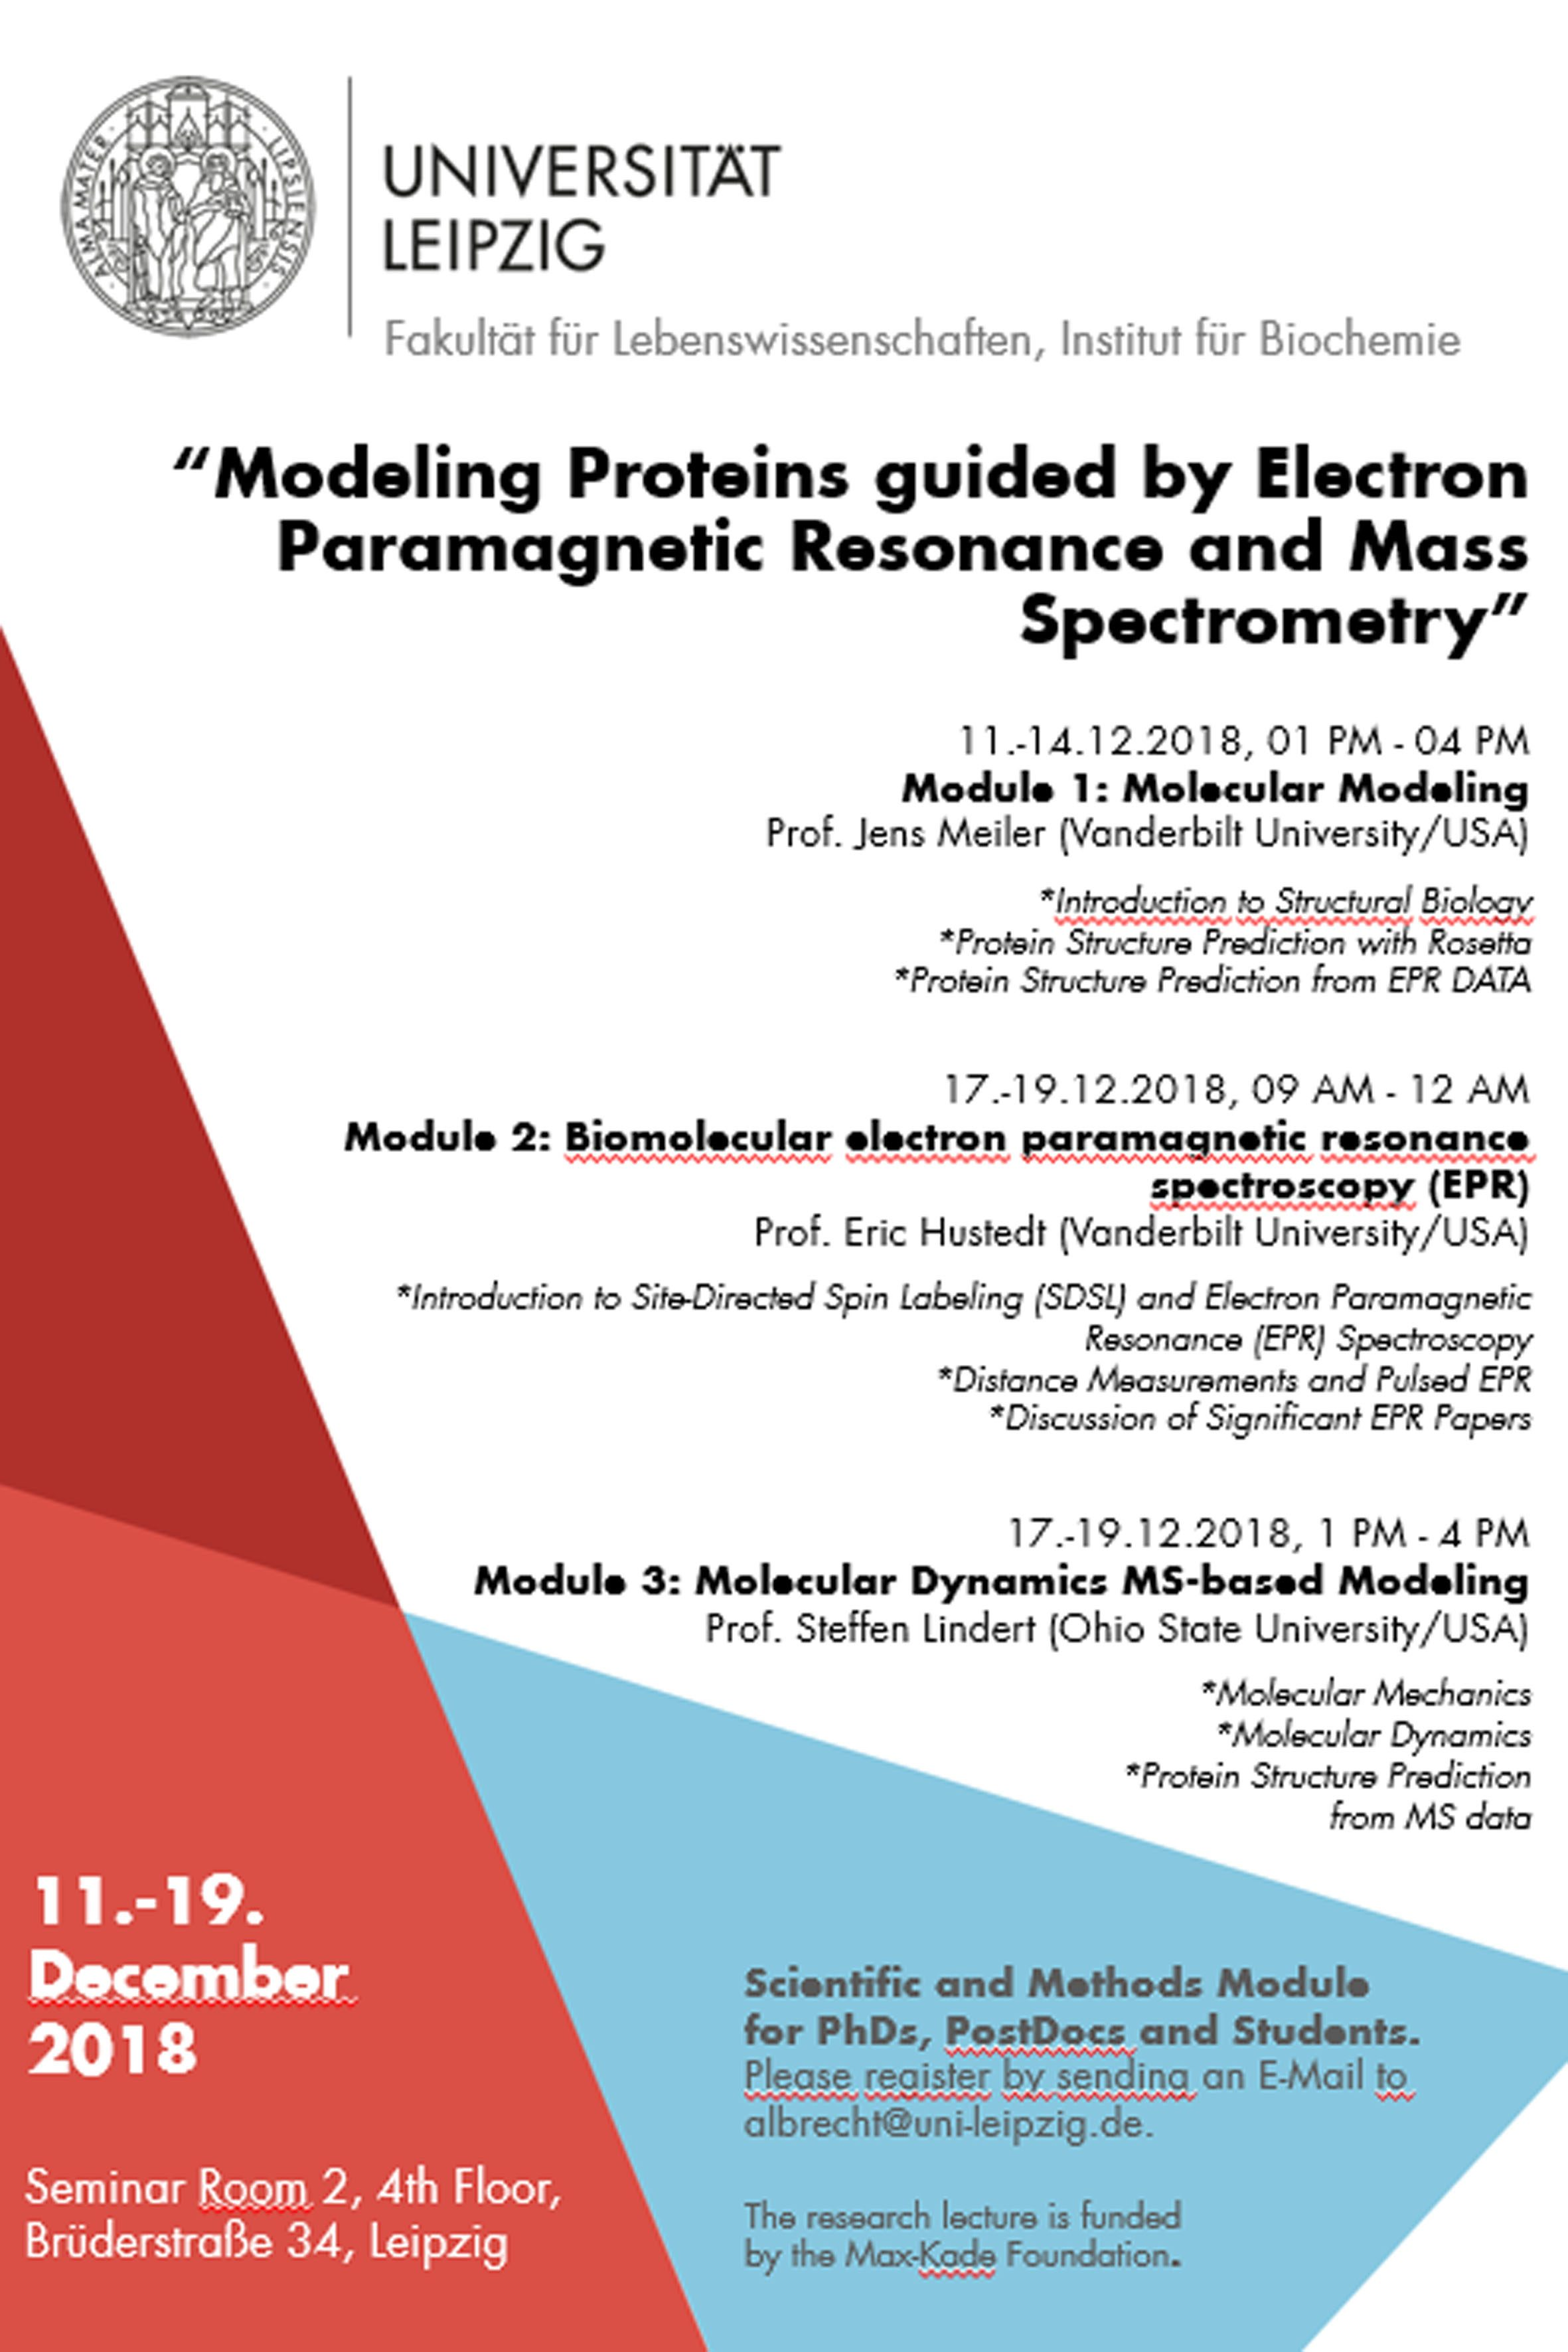 """Lecture on """"Modeling Proteins guided by Electron Paramagnetic Resonance and Mass Spectrometry"""" at Leipzig University"""